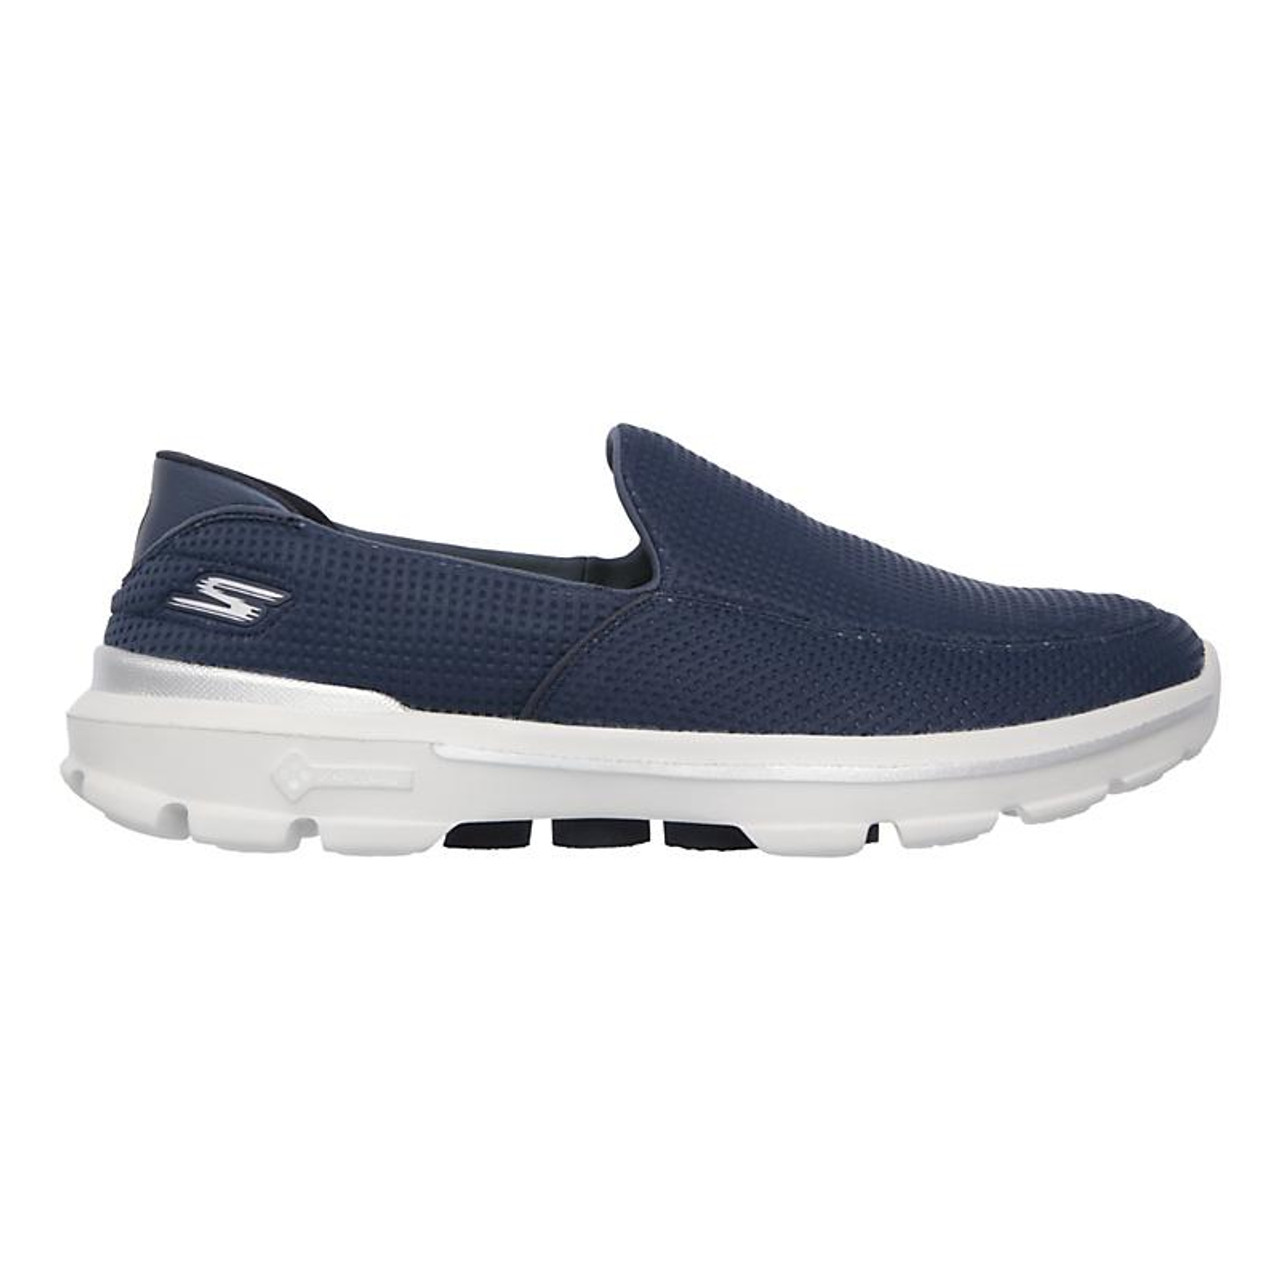 Men's Skechers GO Walk 3 Unfold